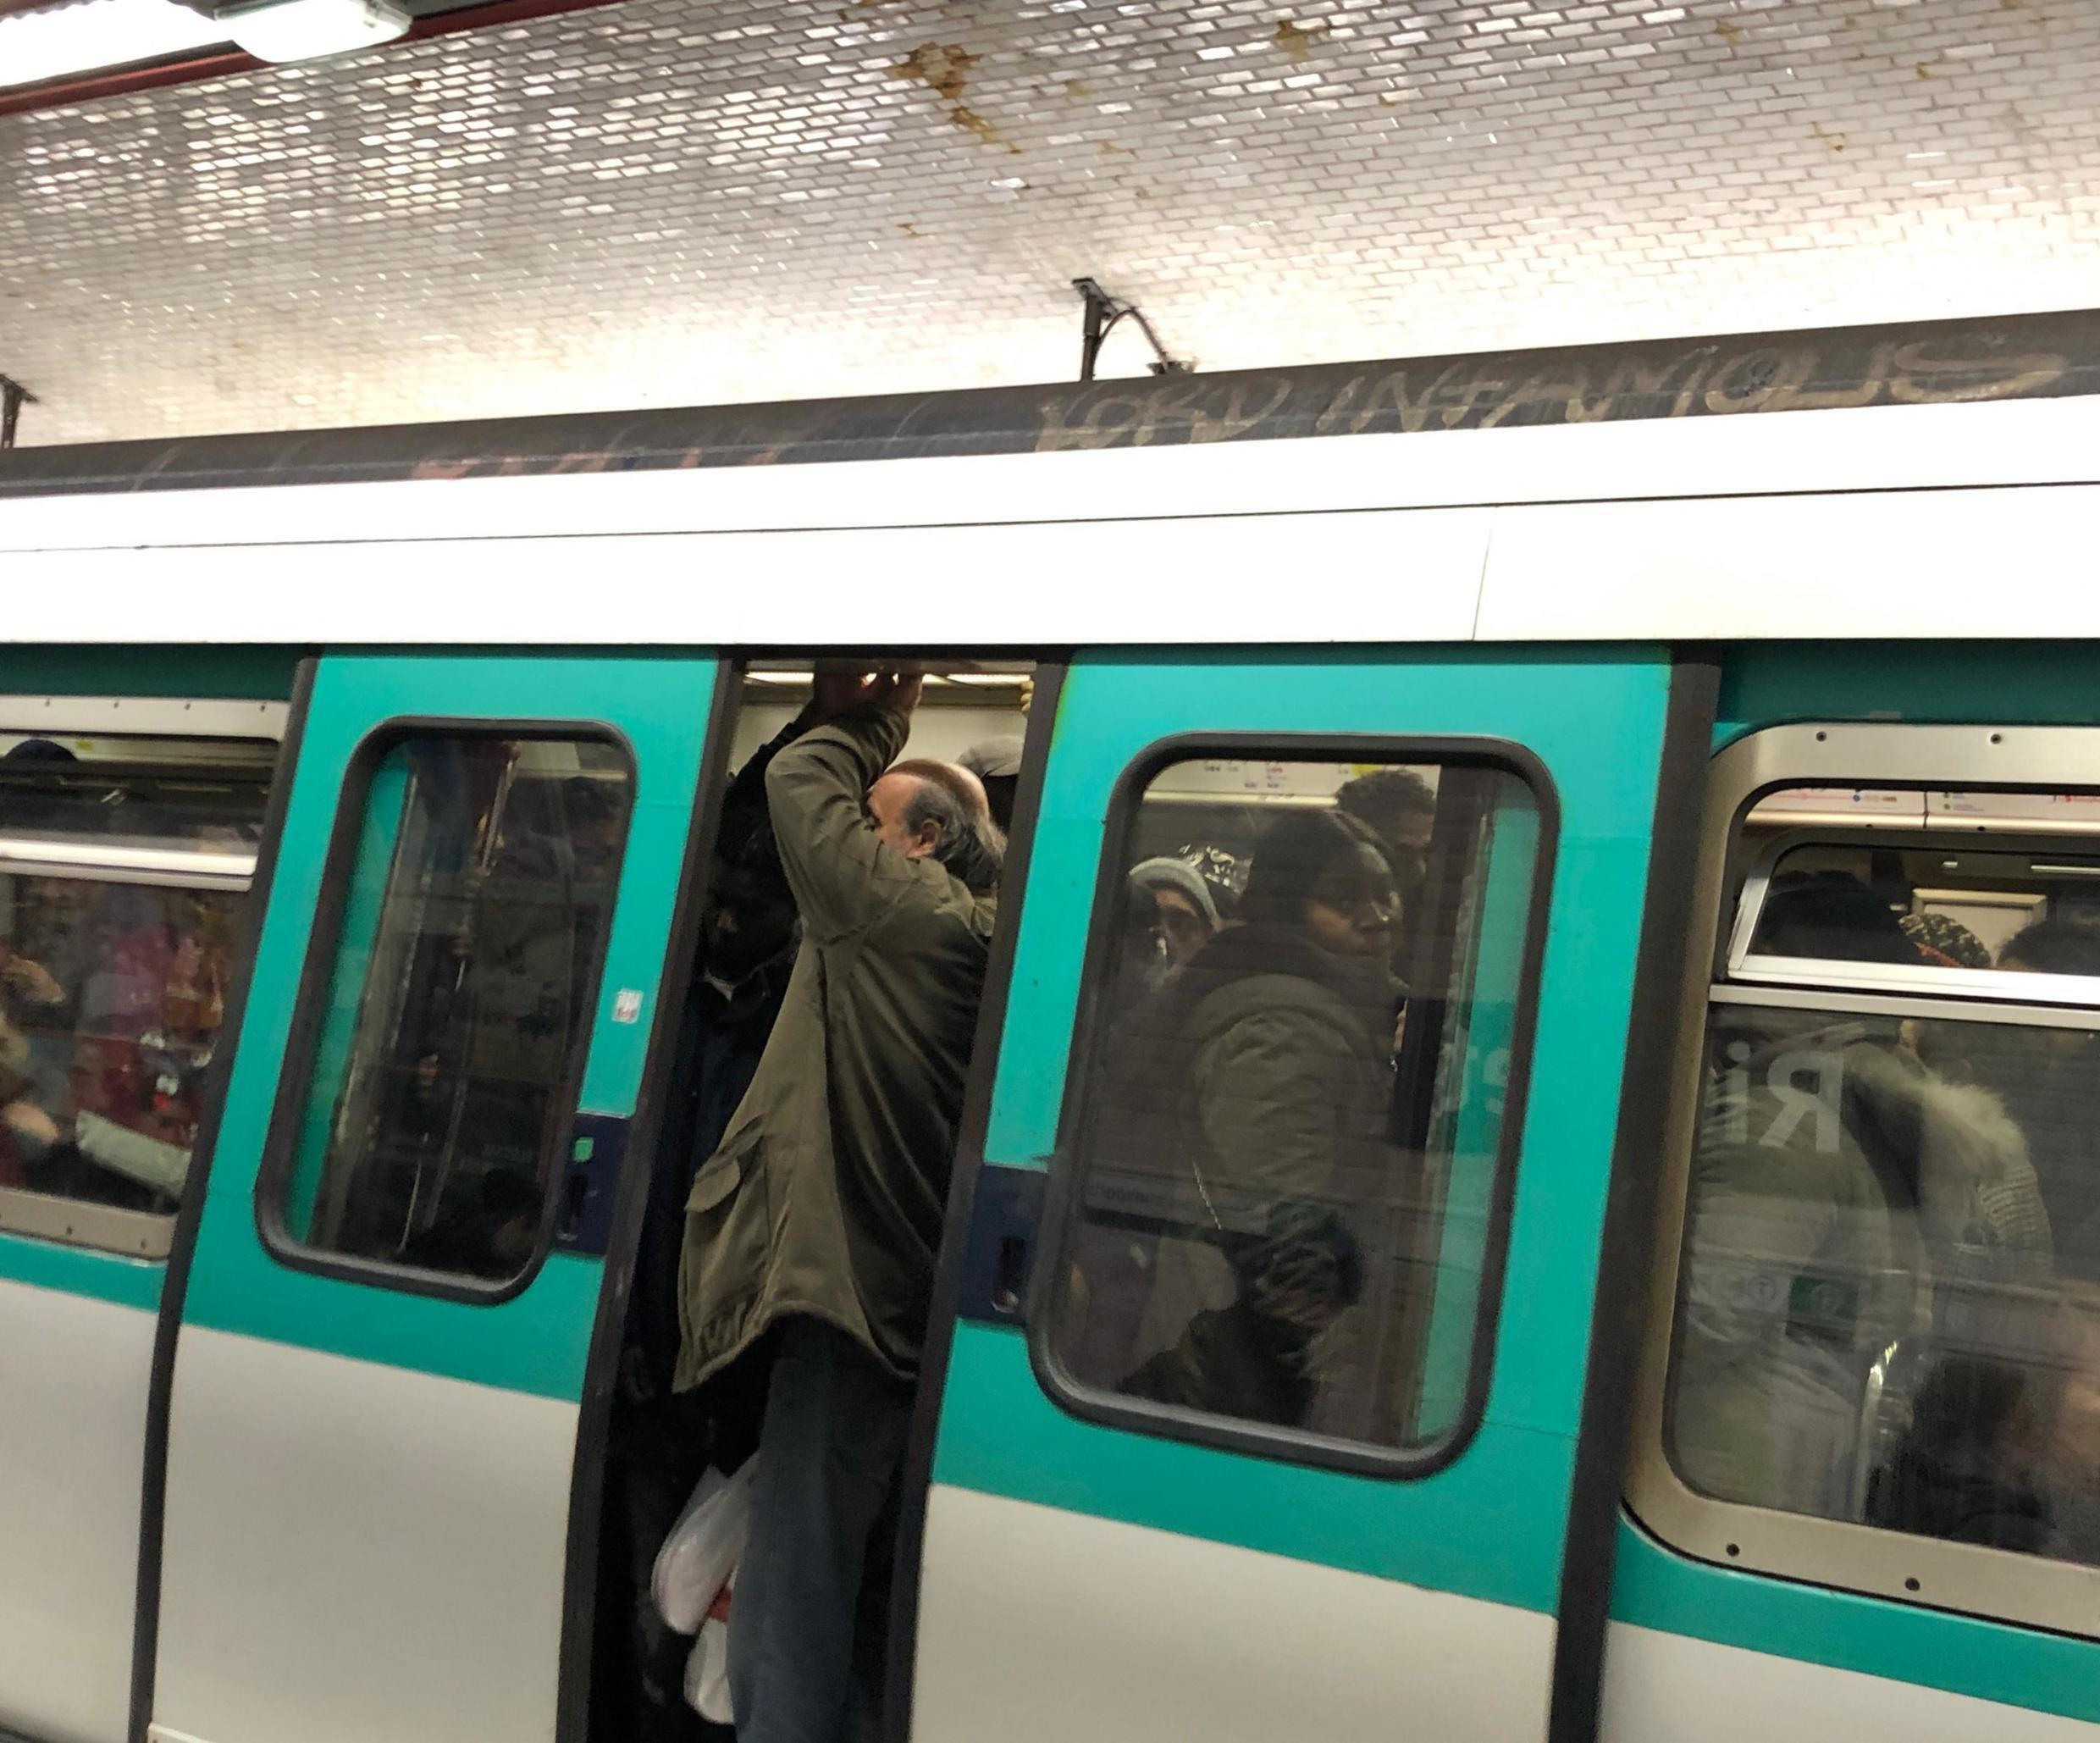 Traffic on Paris Metro lines remained saturated and disrupted on Monday despite a slight uptick in the number of lines providing services.